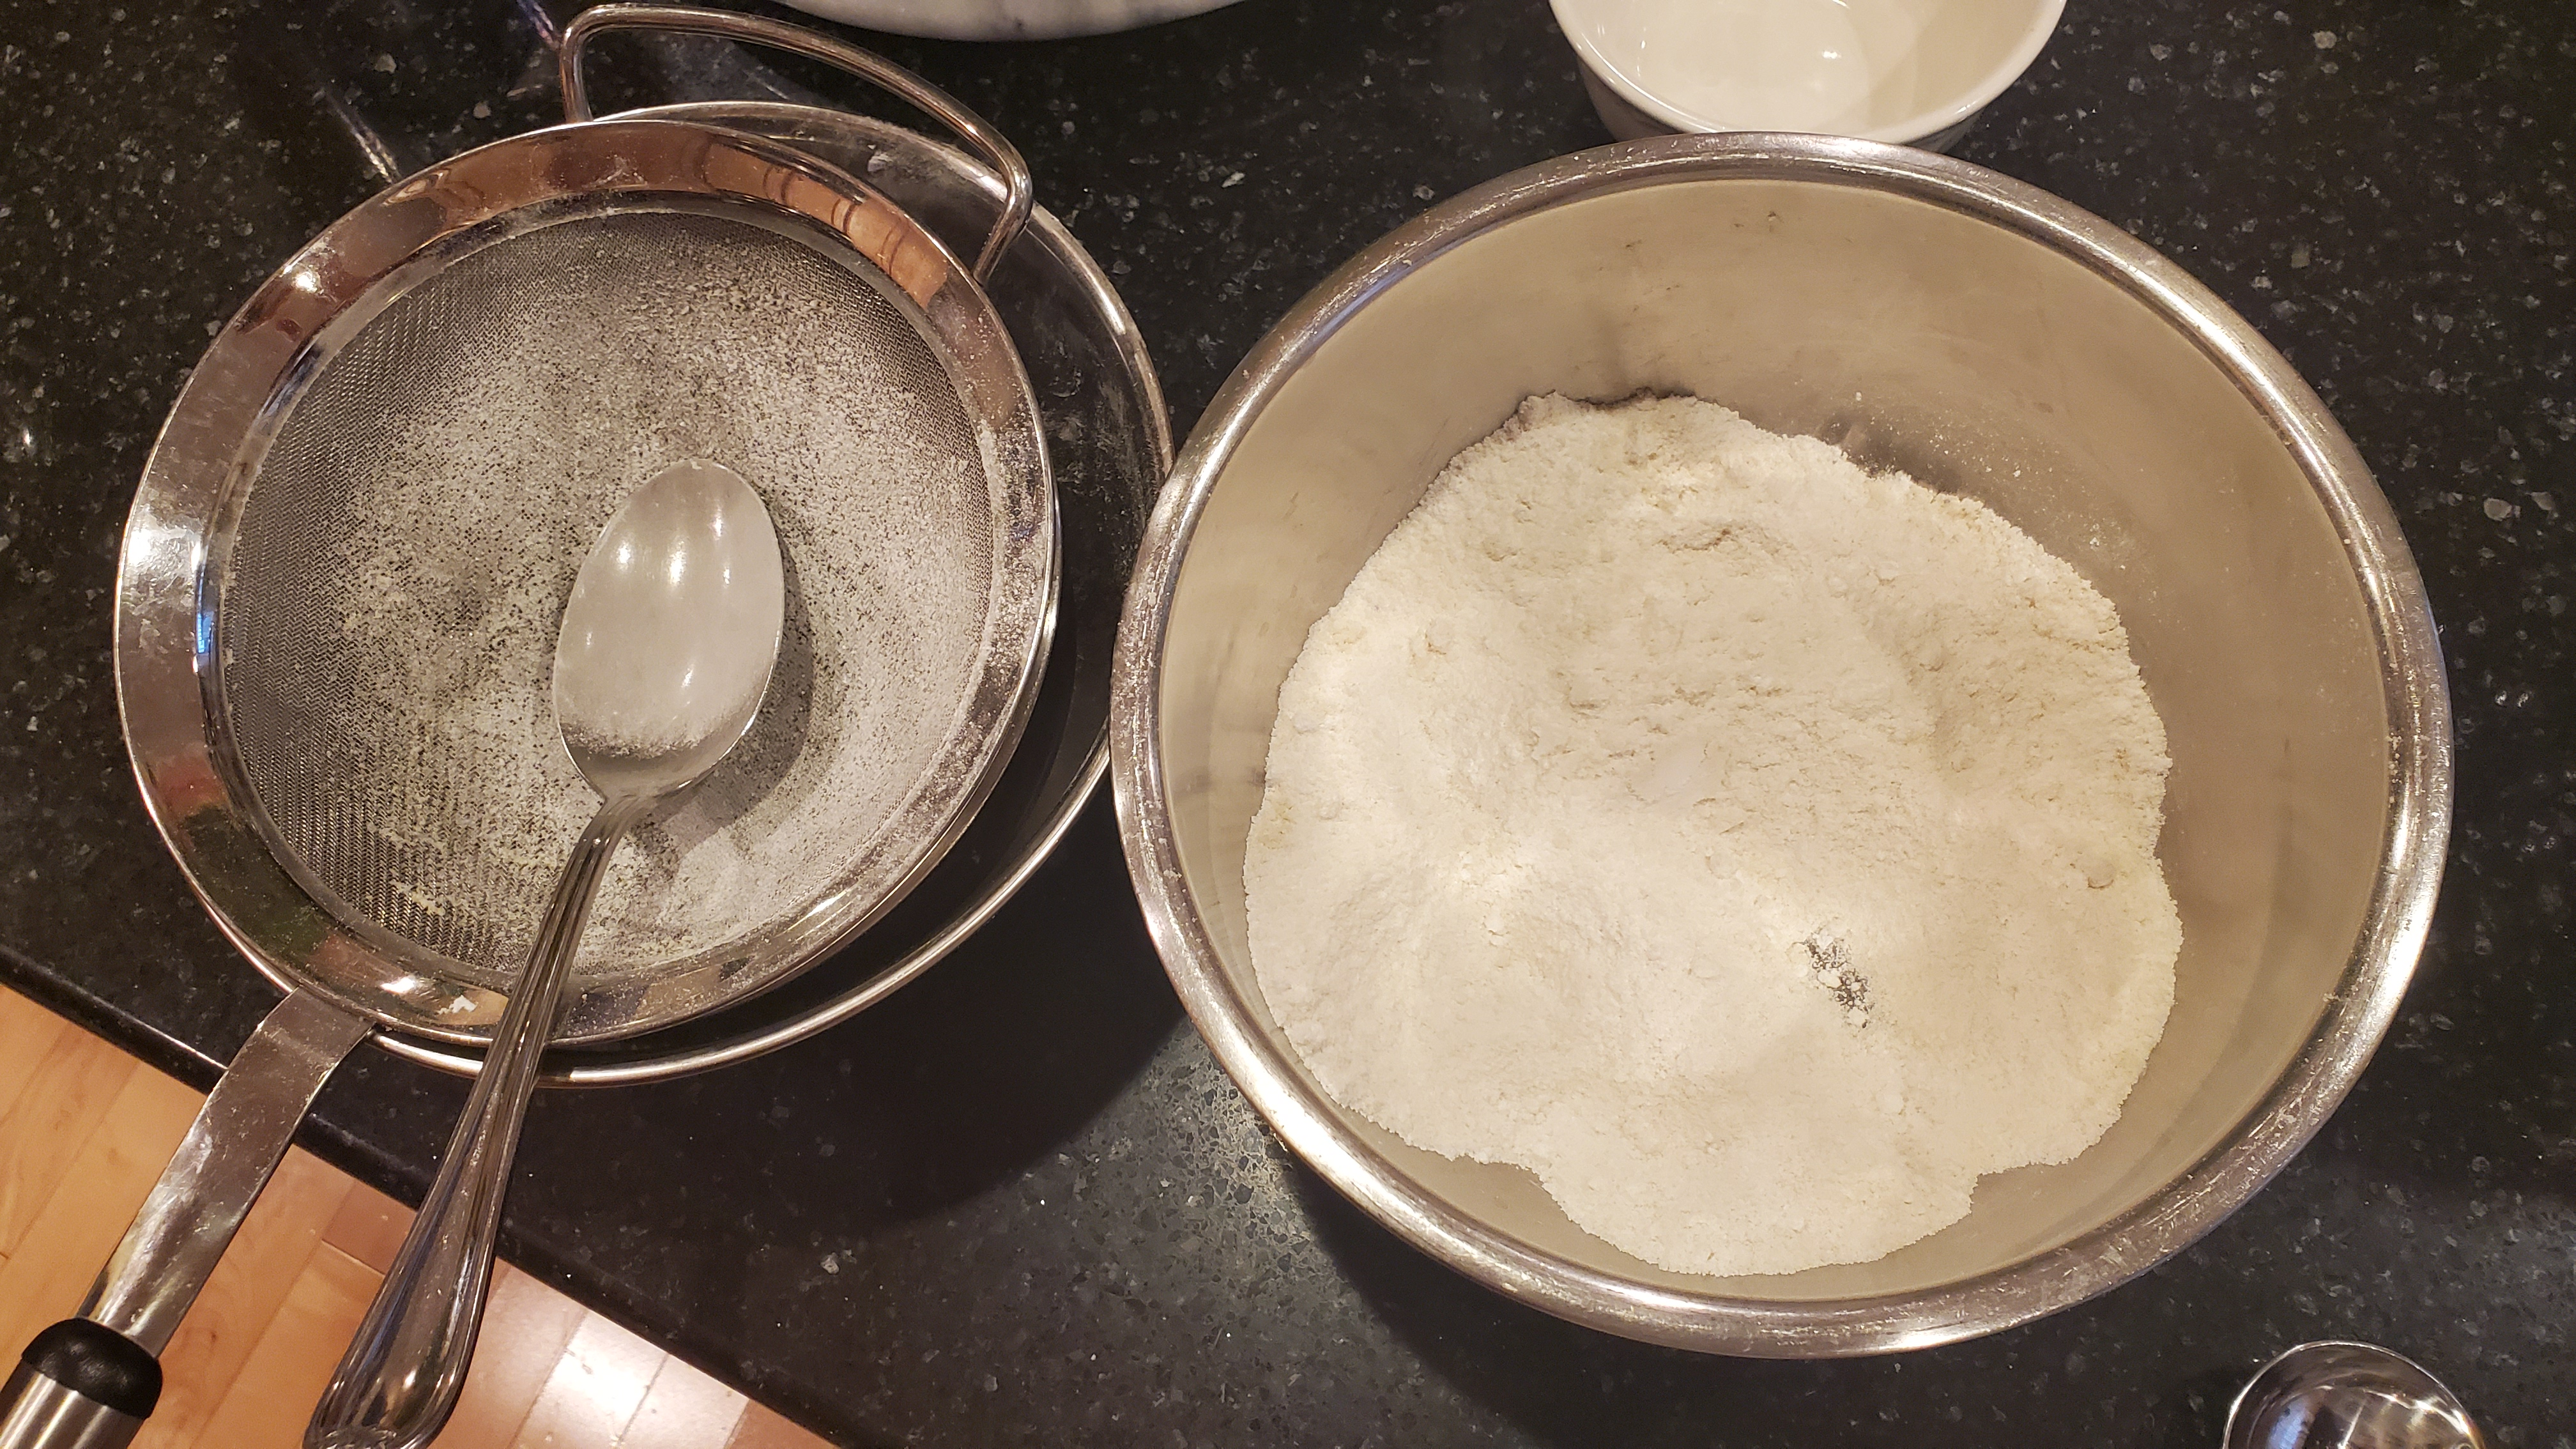 Powdered sugar and almond flour being sifted from a mesh strainer to a medium stainless steel bowl.